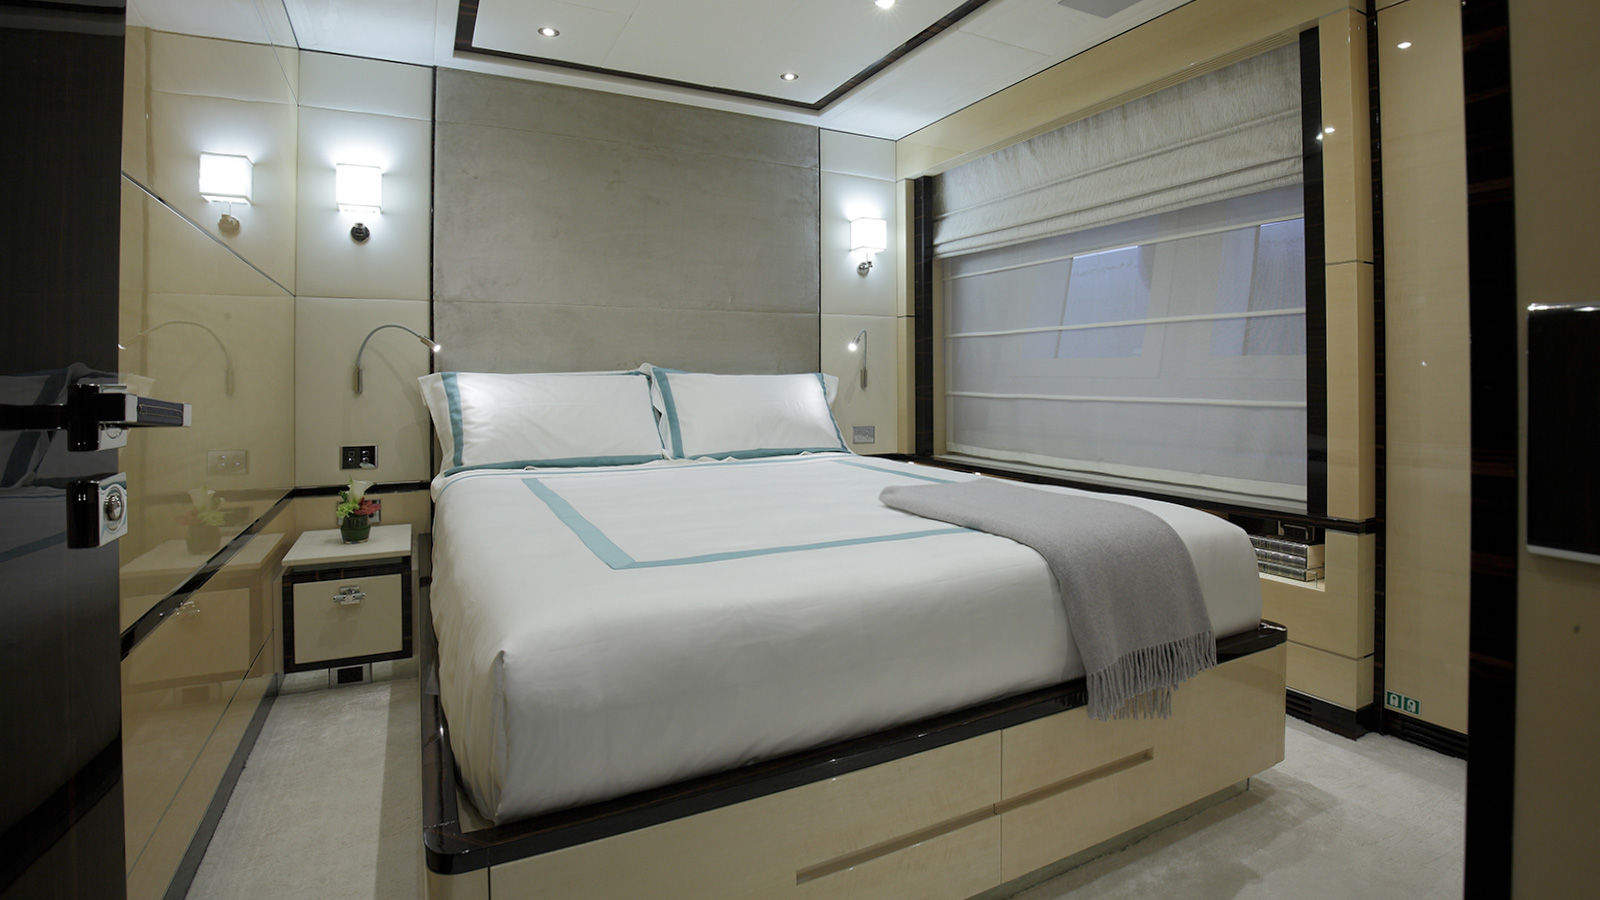 one-of-the-guest-cabins-on-the-benetti-fast-125-yacht-skyler